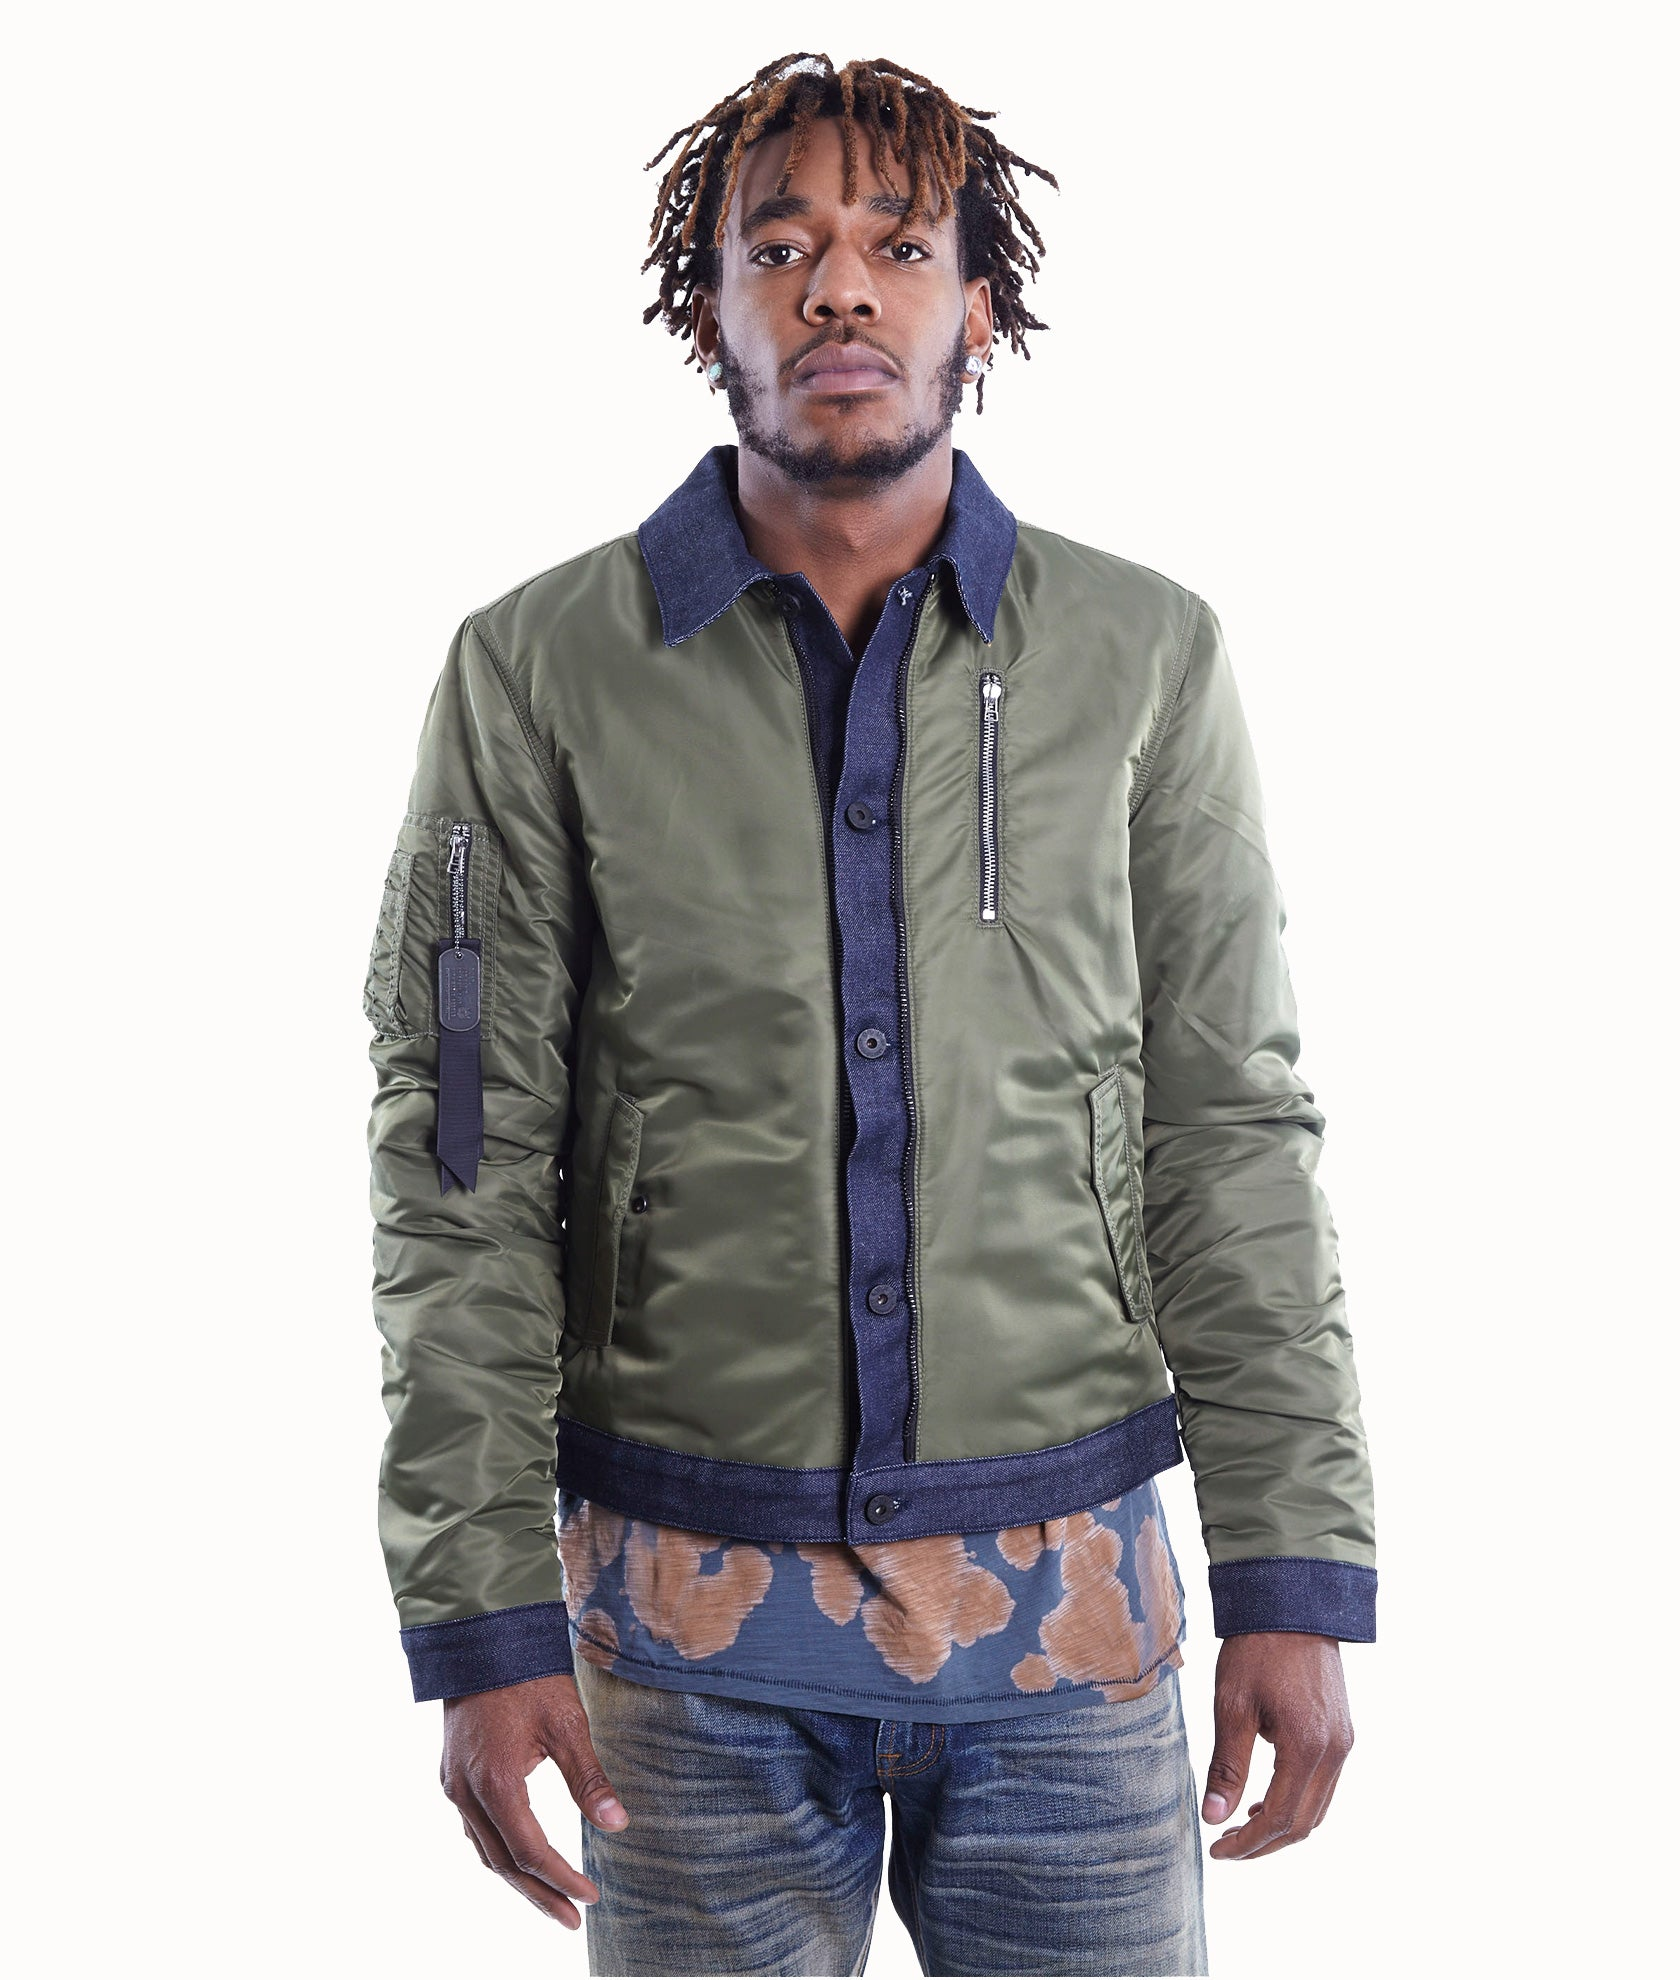 Cult of IndividualityMen's Combo Bomber Jacket in Olive/Denim3XL